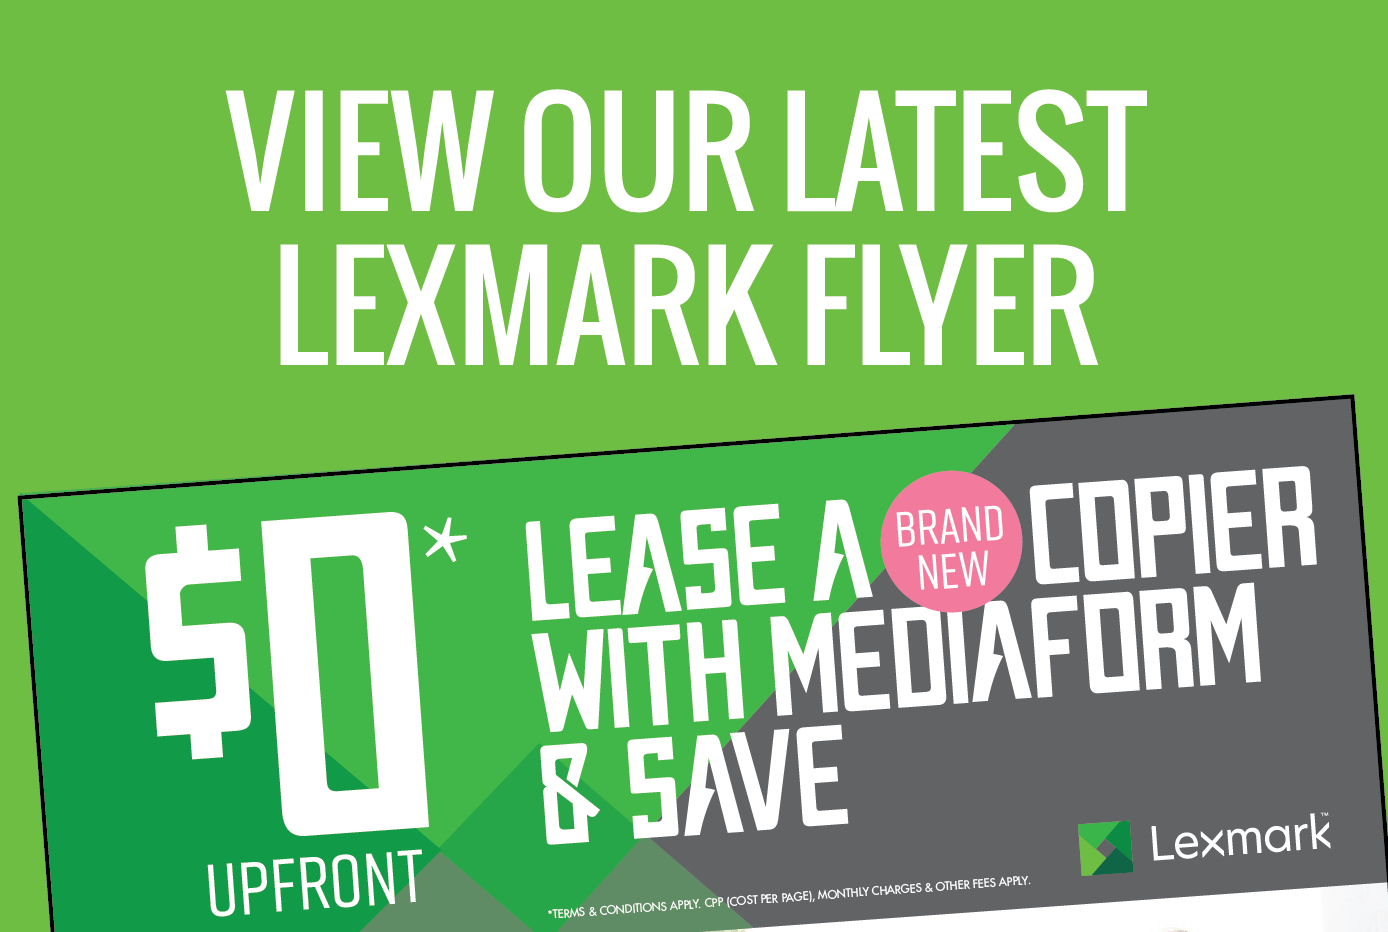 View our latest Lexmark flyer